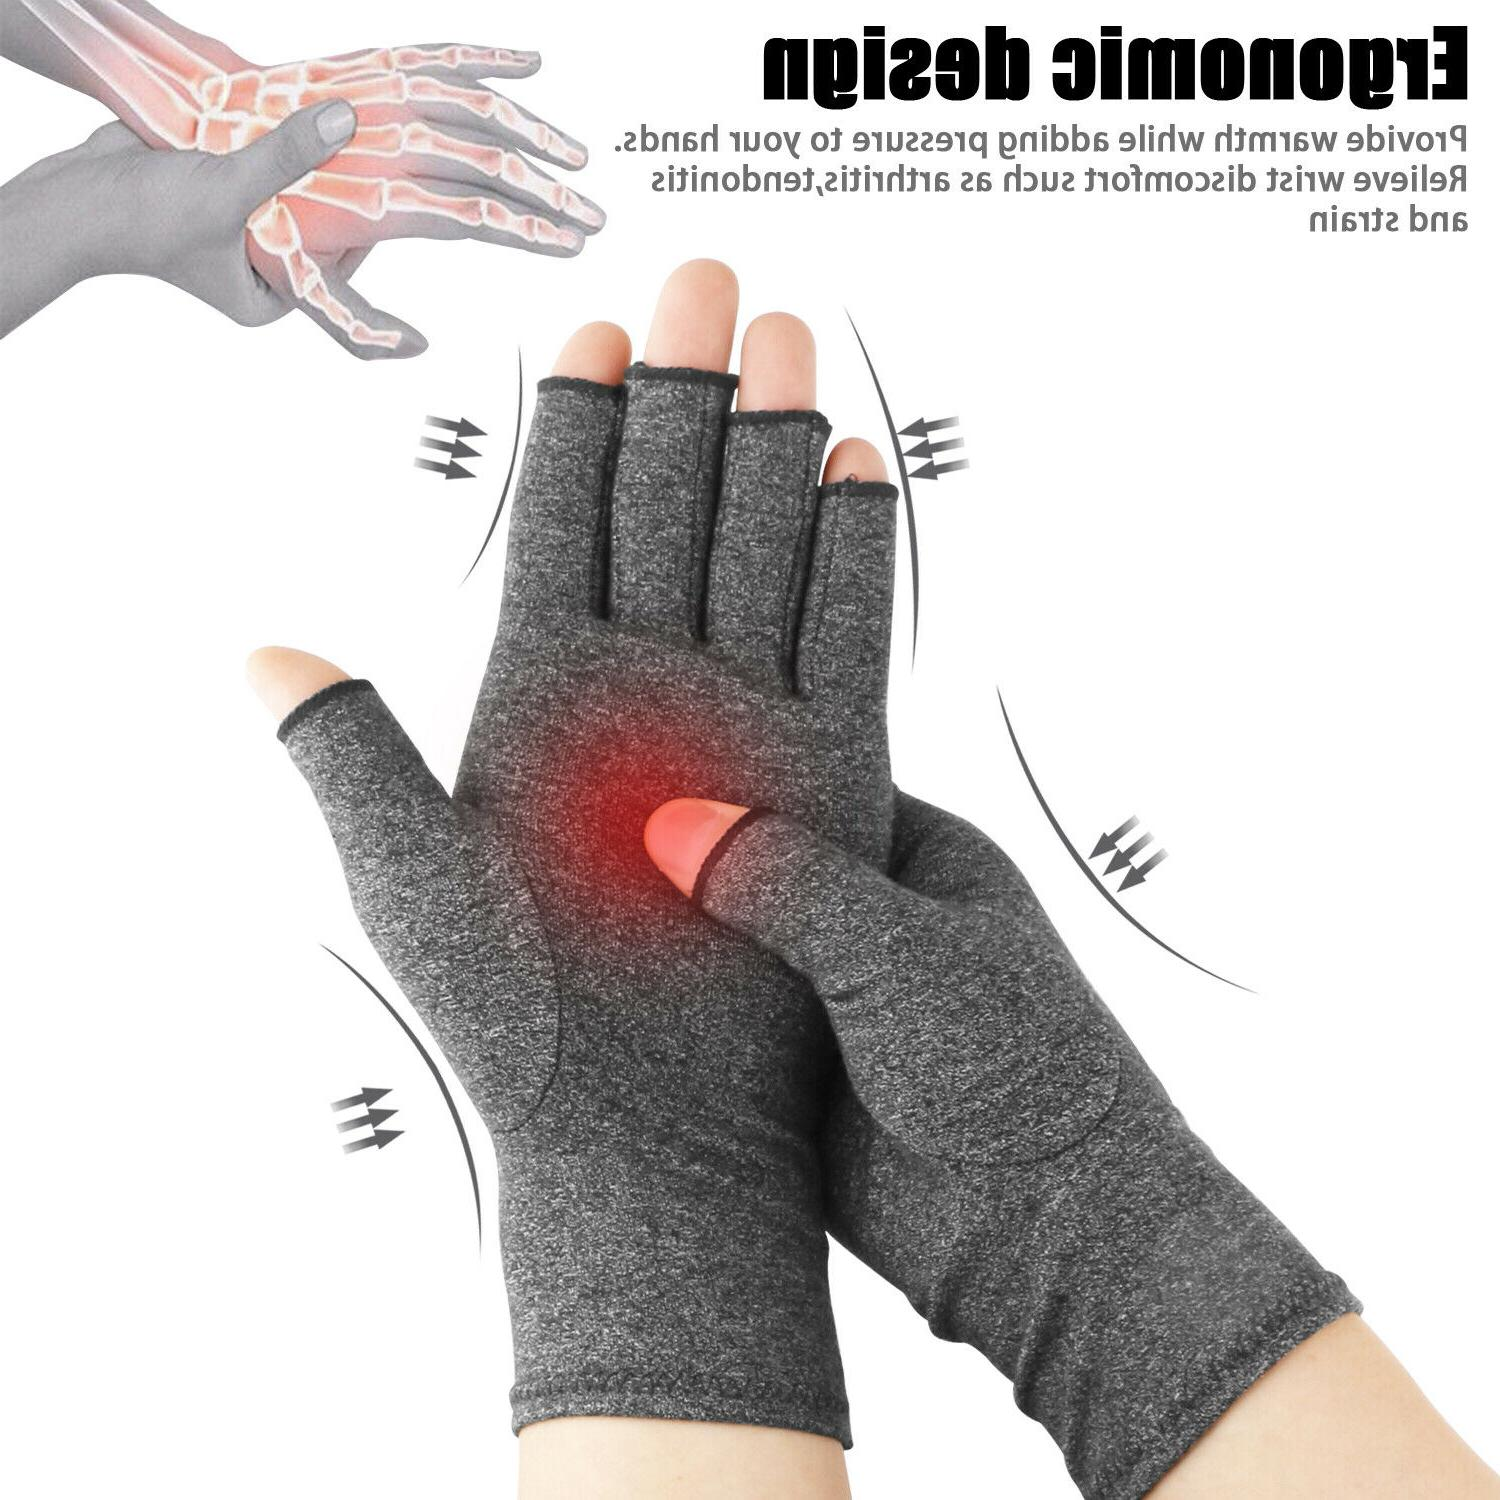 compression gloves arthritis pain relief carpal tunnel